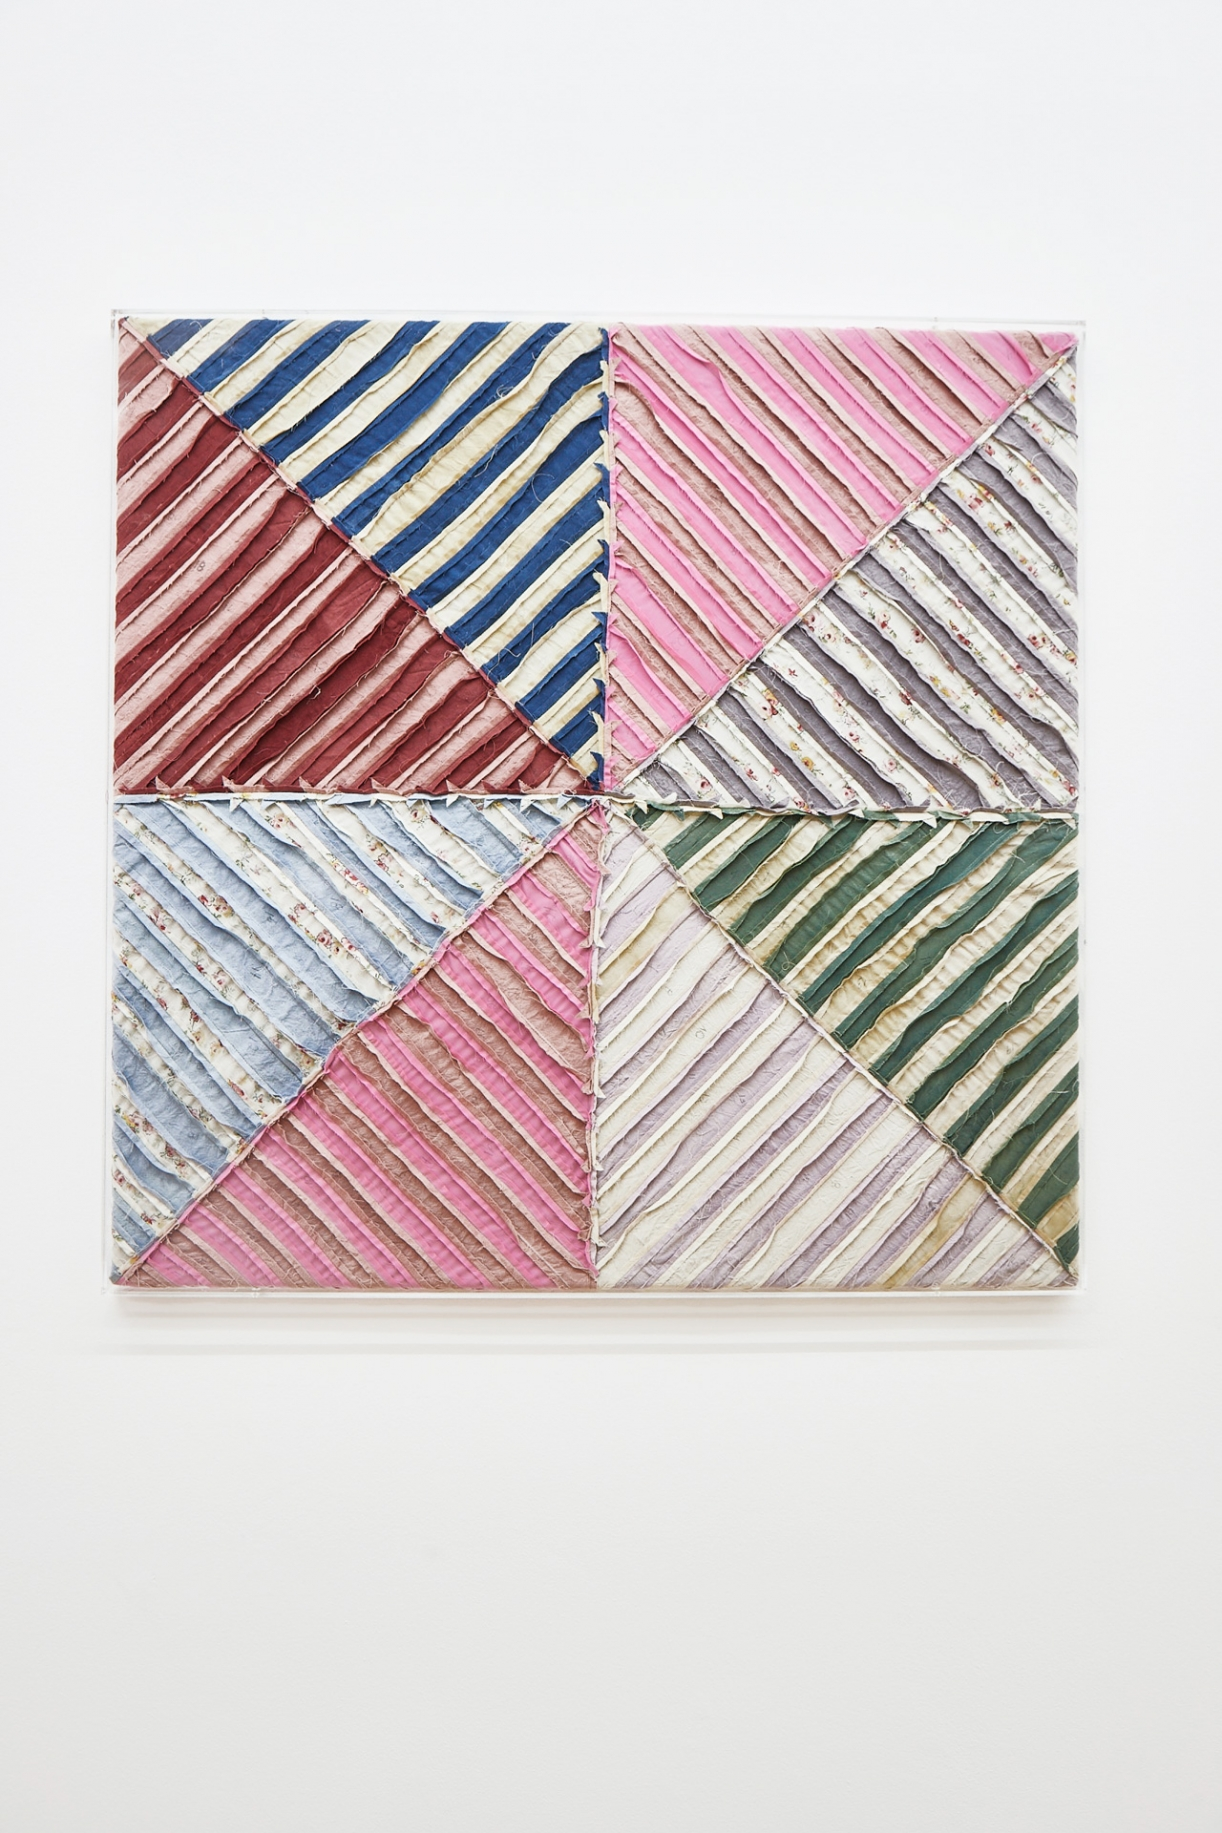 Untitled (After Stella Sidi Ifni II), 2020, cotton, silk on natural linen burlap, 98 x 98 x 3 cm